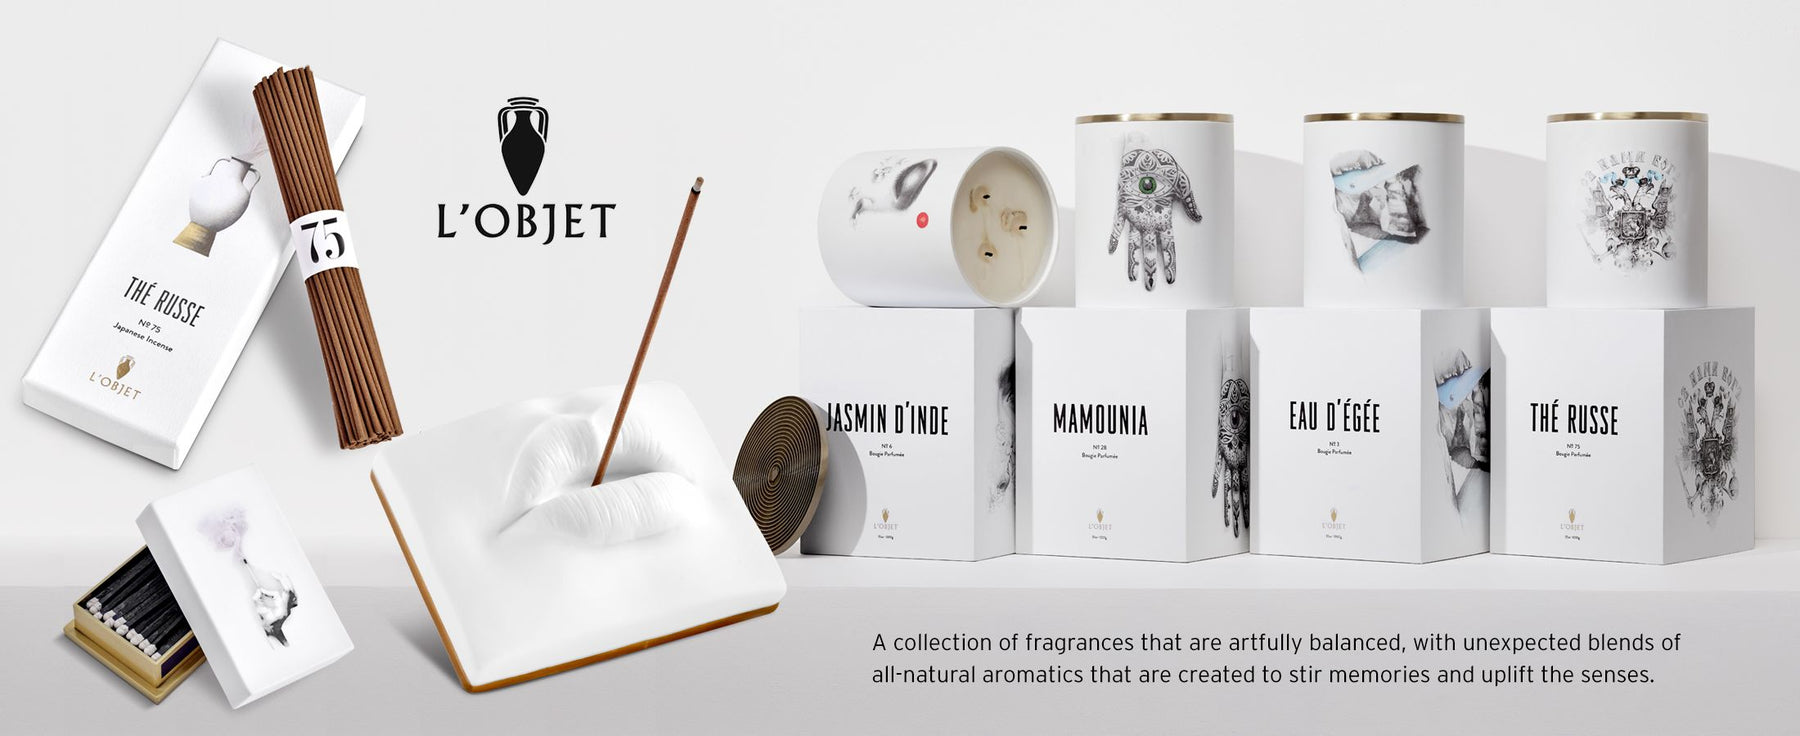 L'Objet - A collection of fragrances that are artfully balanced, with unexpected blends of  all-natural aromatics that are created to stir memories and uplift the senses. A selection of incense, incense holder, matches and candles shown.